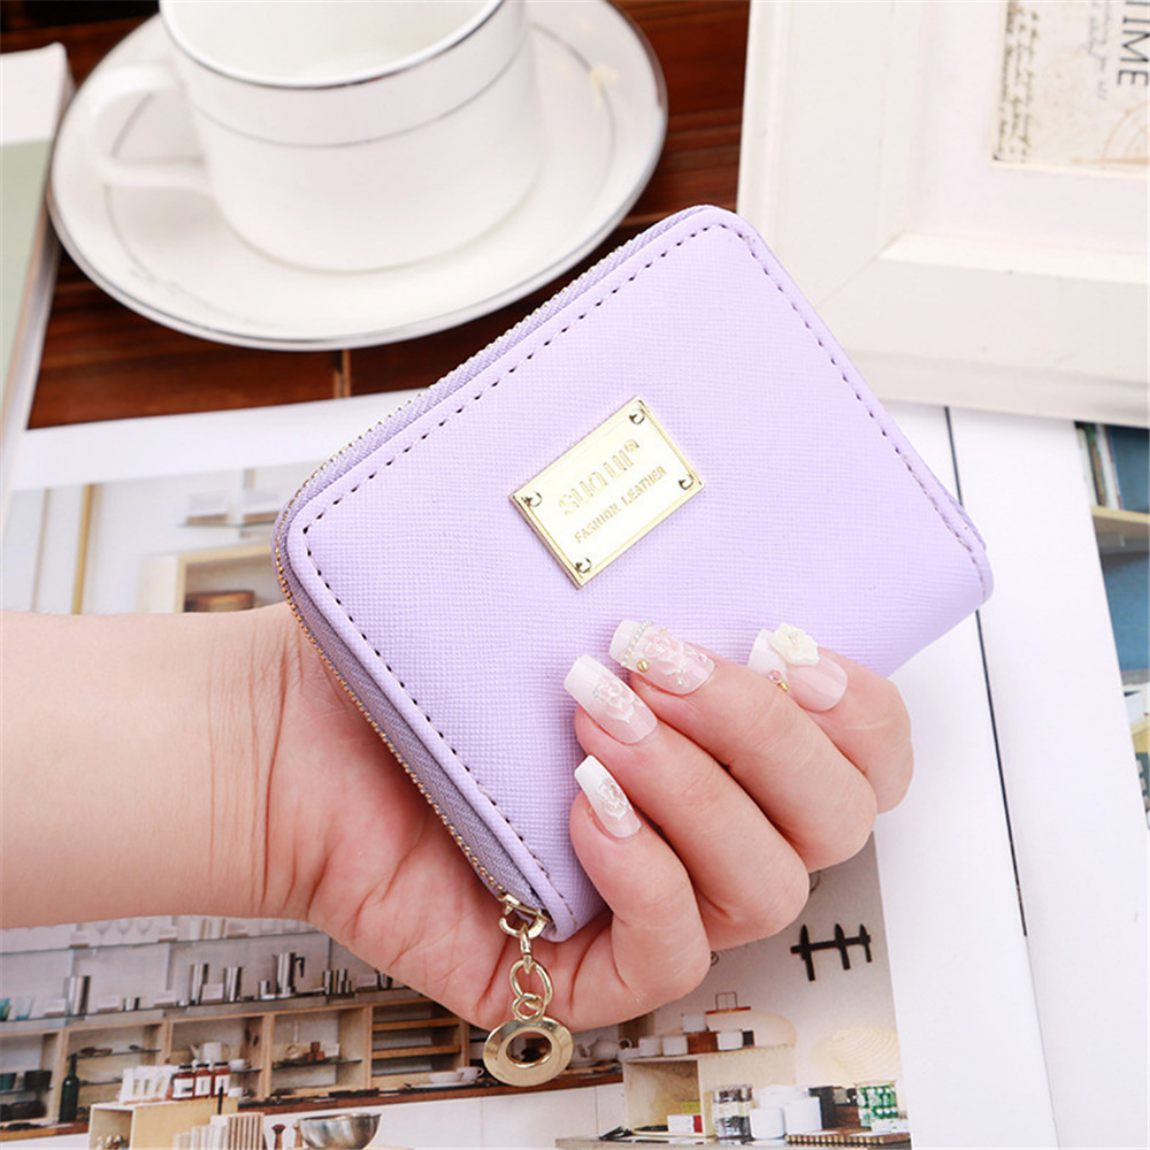 2018 PU Leather Women Wallet Metal sheets Decorate Wallet Women Zipper Wallet Women Short Coin Purse High Quality Fashion2018 PU Leather Women Wallet Metal sheets Decorate Wallet Women Zipper Wallet Women Short Coin Purse High Quality Fashion